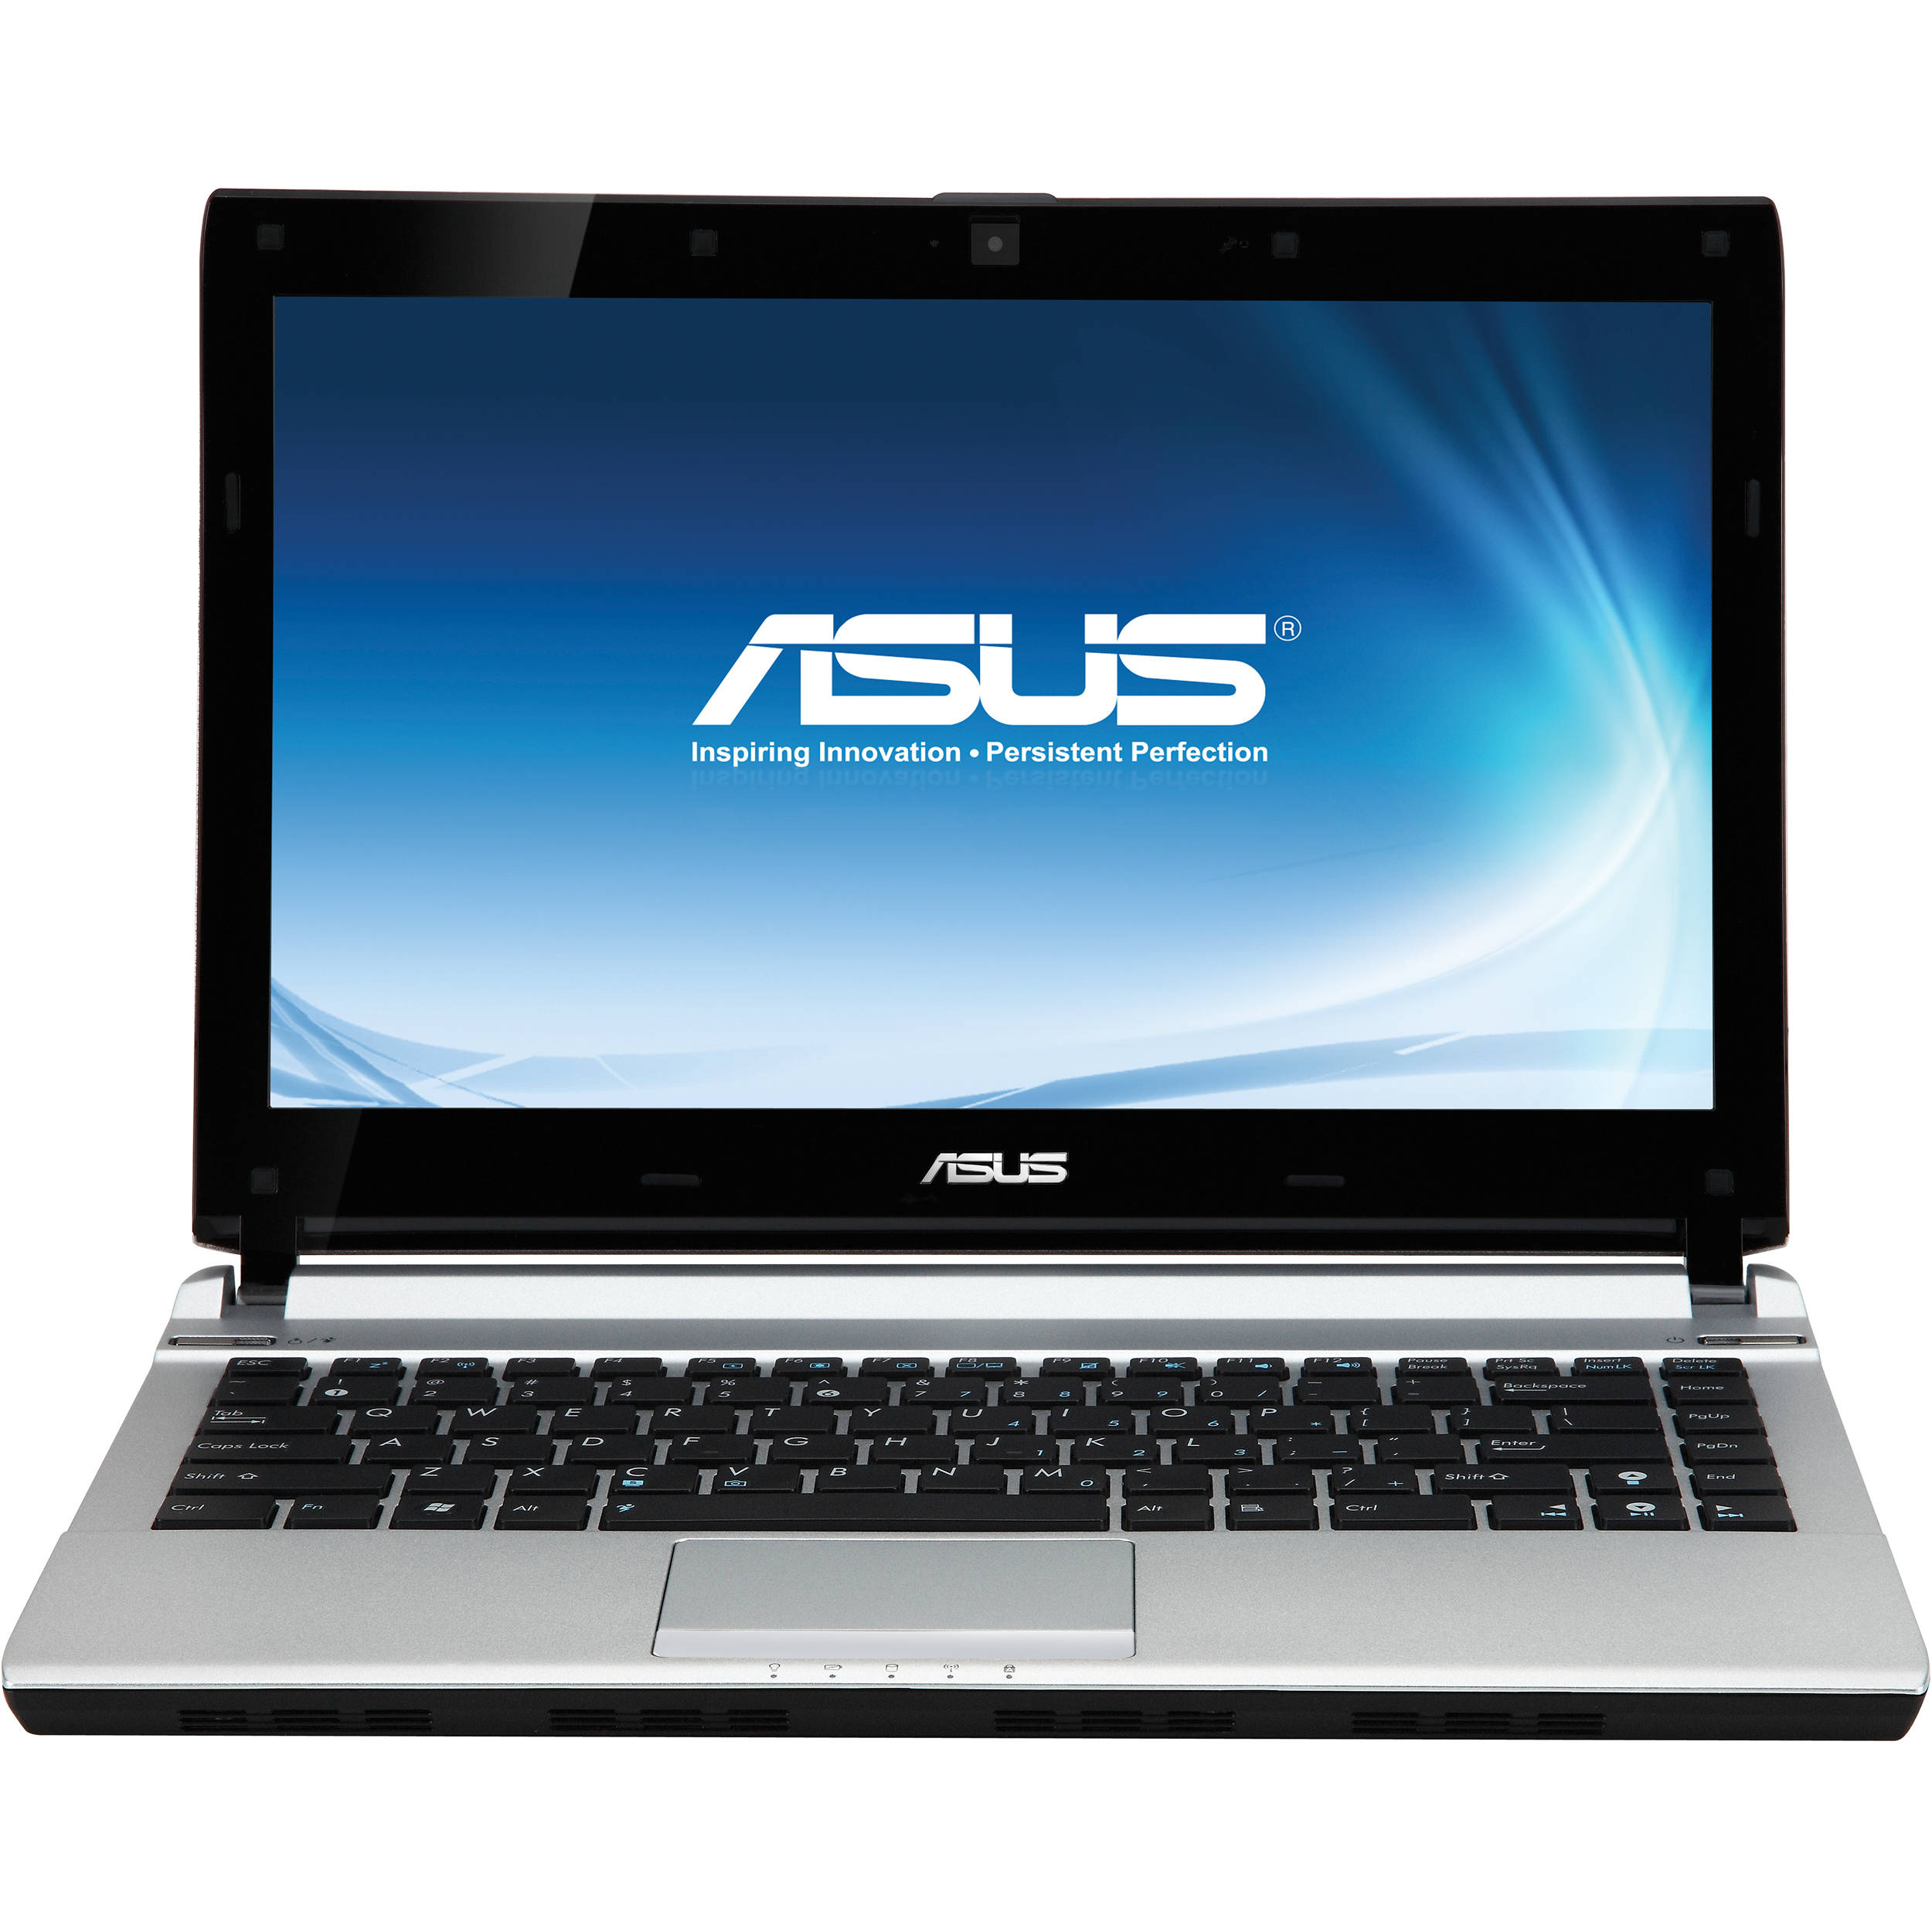 Asus U36JC Rapid Storage Drivers for Windows 10